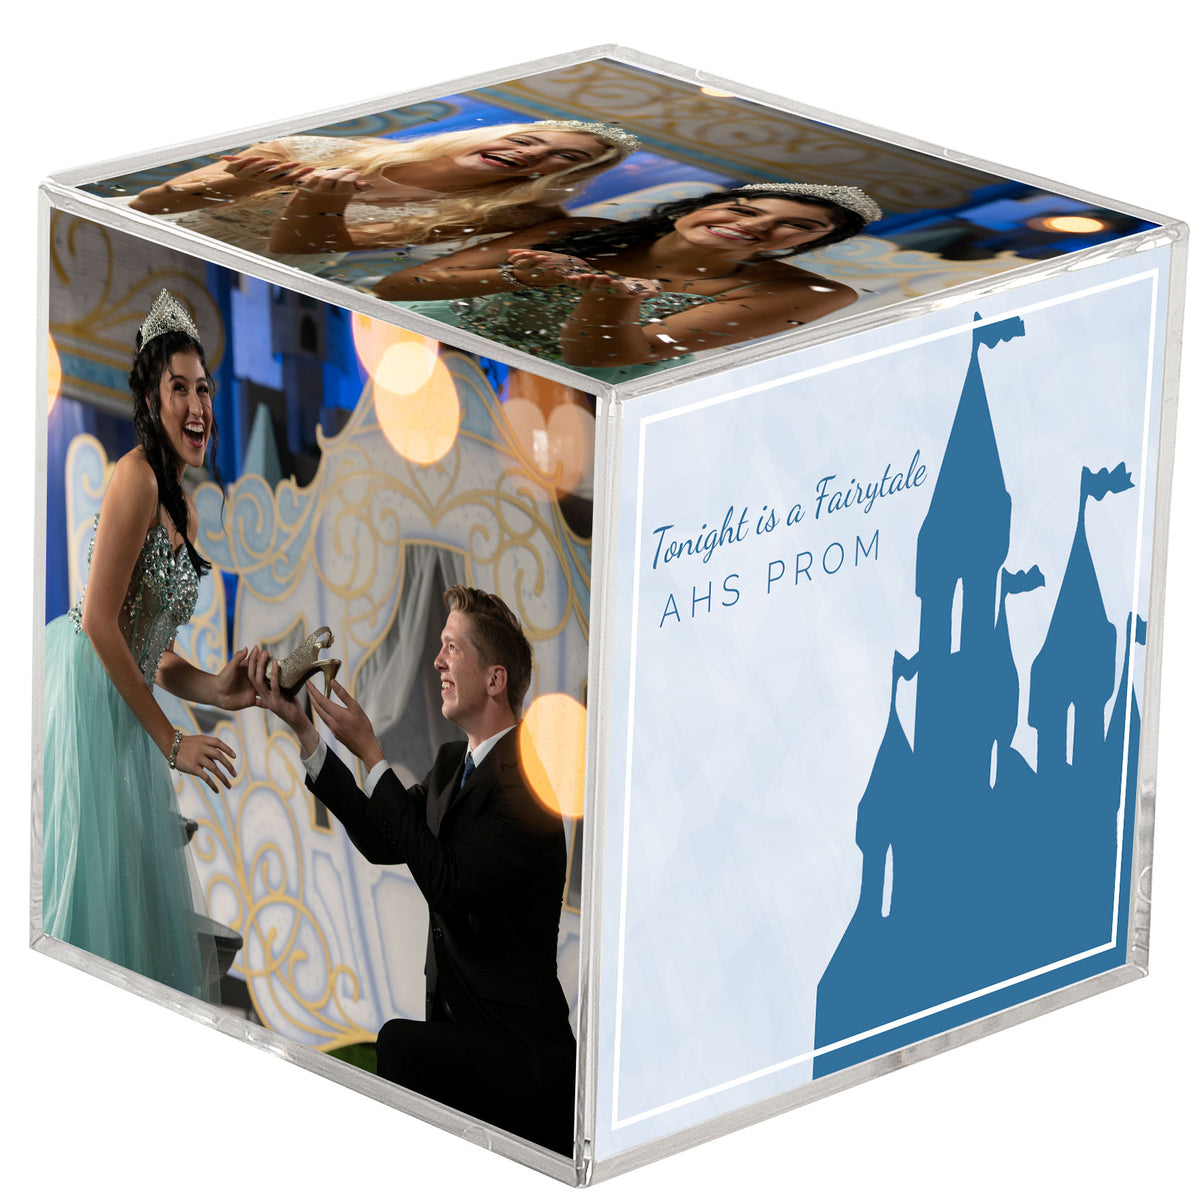 Tonight is a Fairytale Personalized Photo Cube